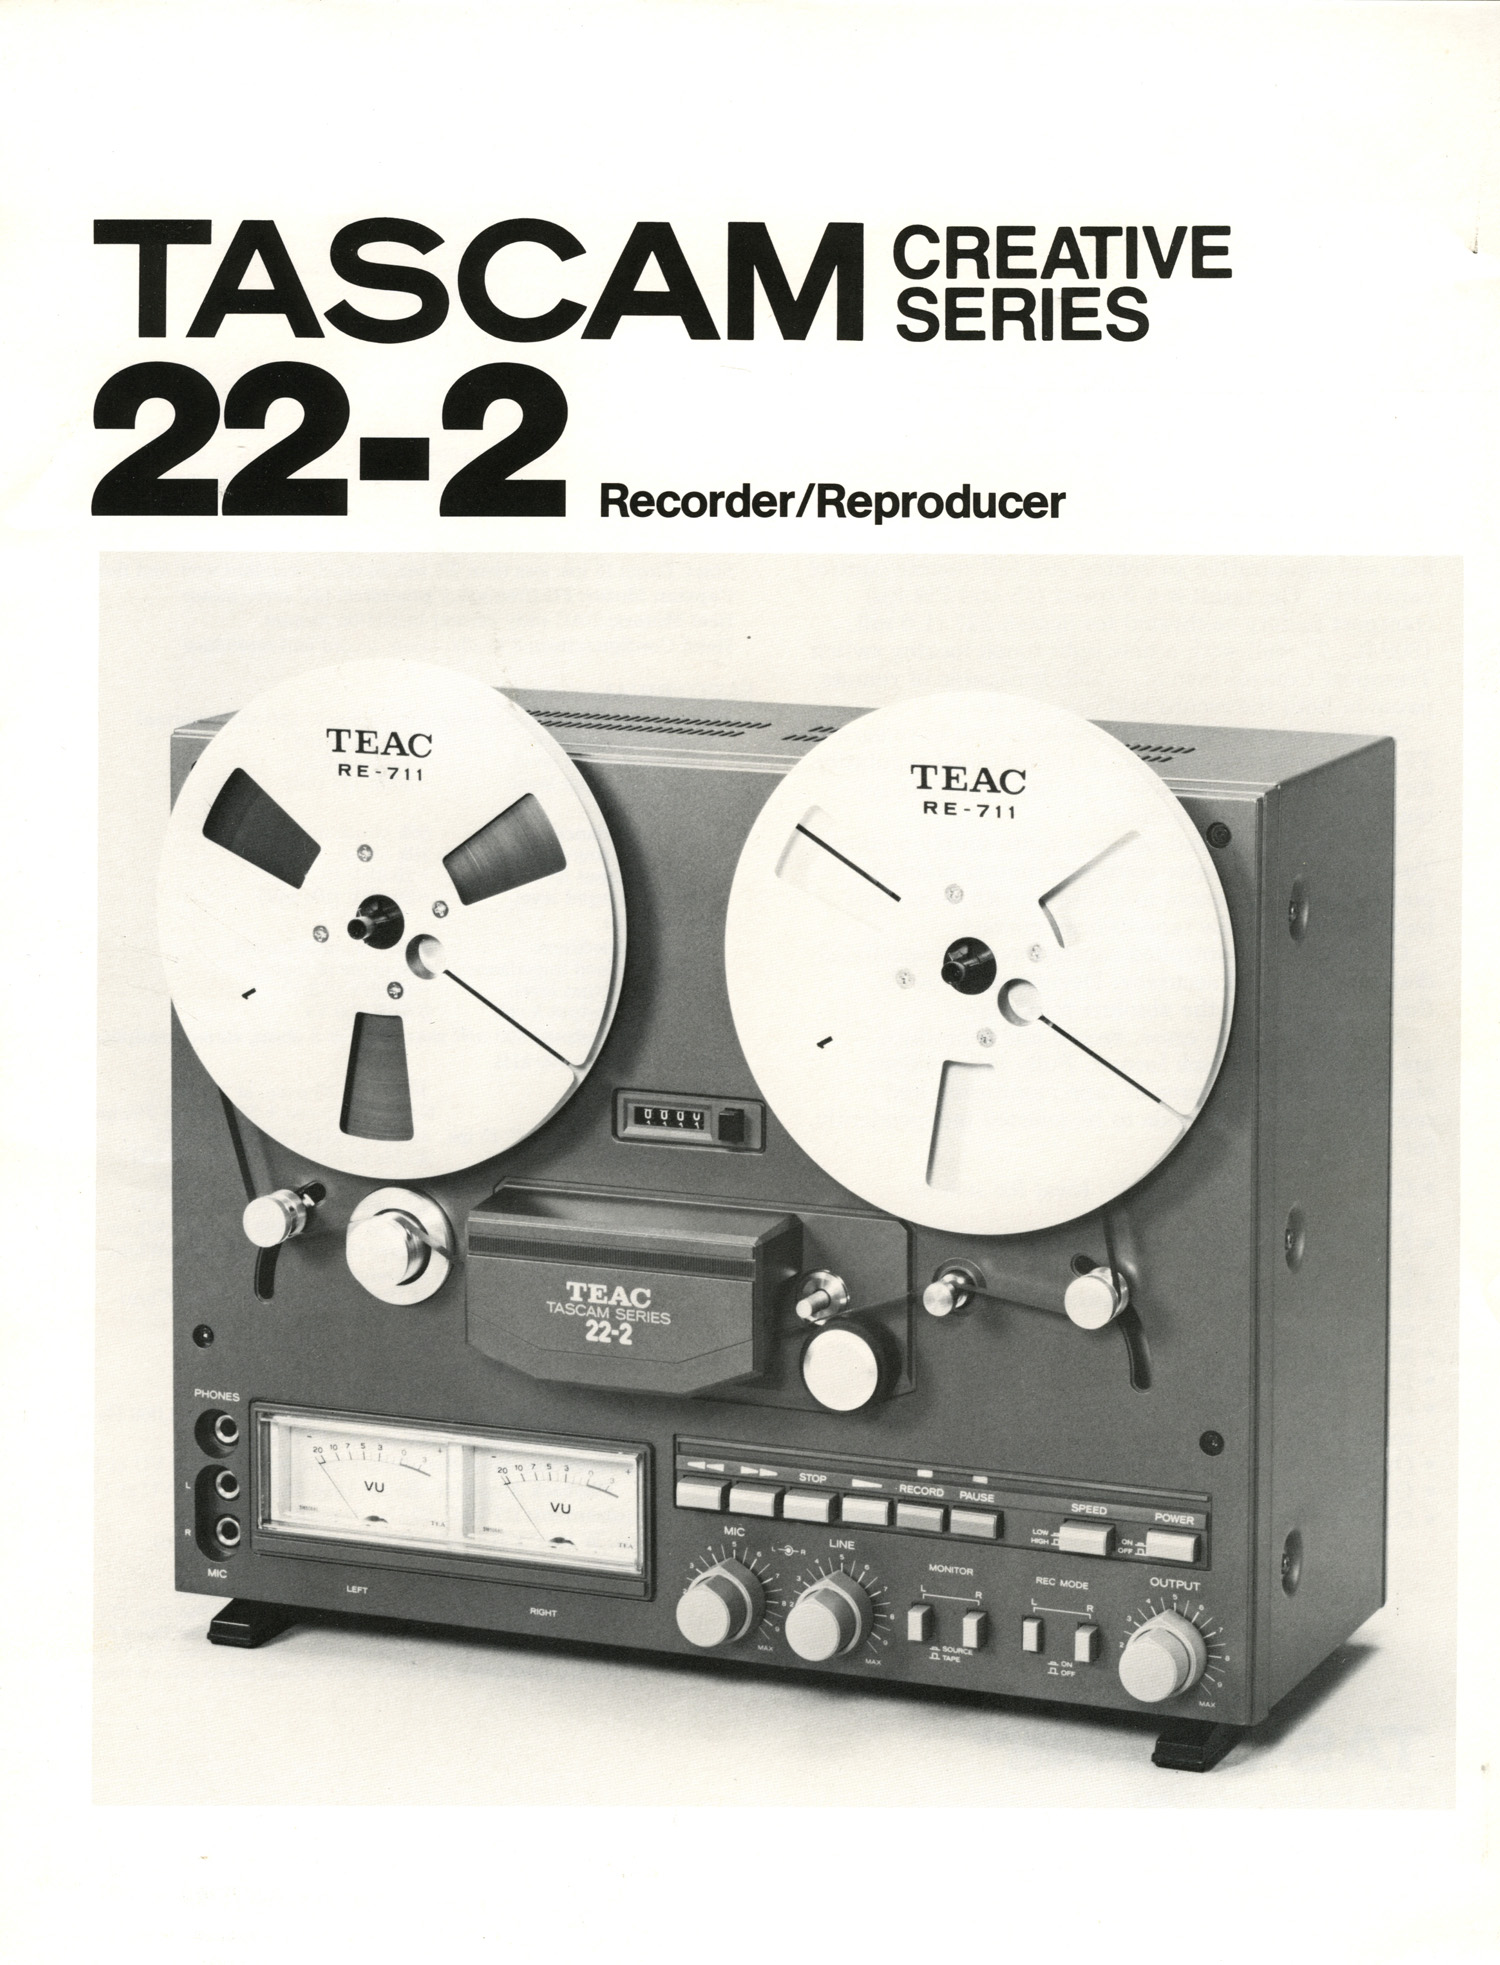 1991 ad for the Teac Tascam 22-2  2 track professional reel to reel tape recorder in the Reel2ReelTexas.com vintage reel tape recorder recording collection Museum